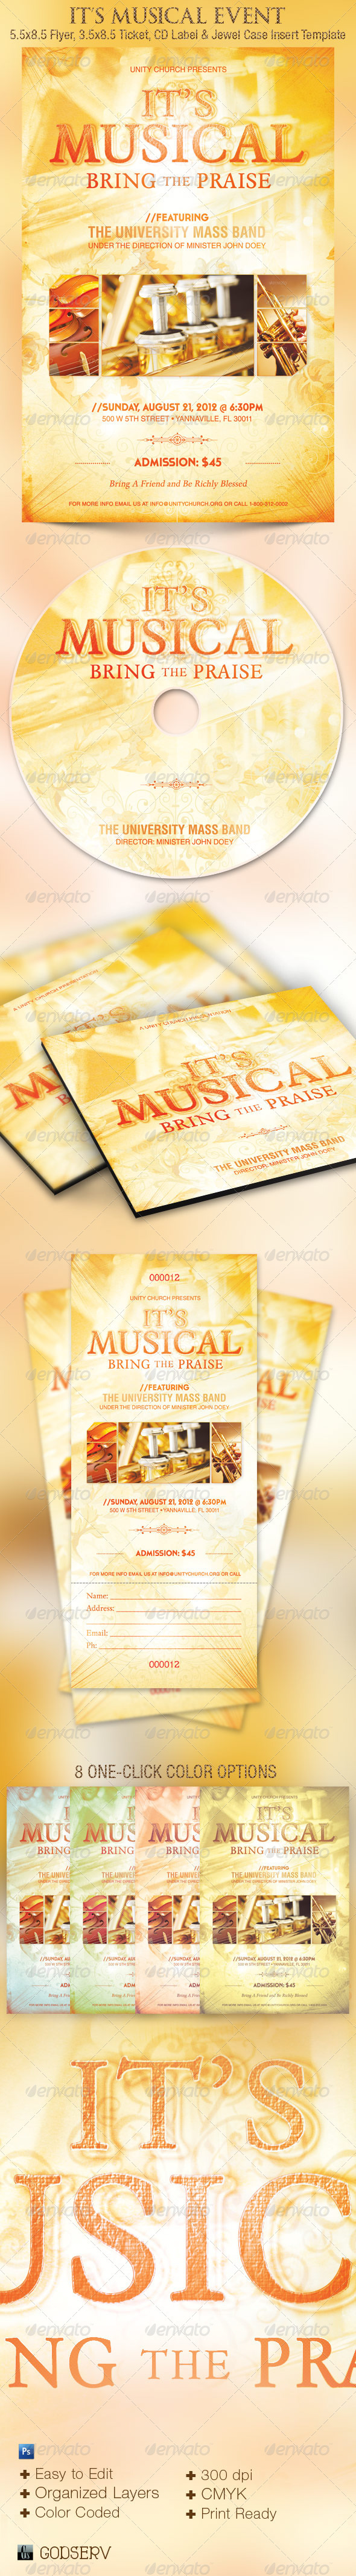 GraphicRiver Its Musical Event Flyer Ticket and CD Template 2564203